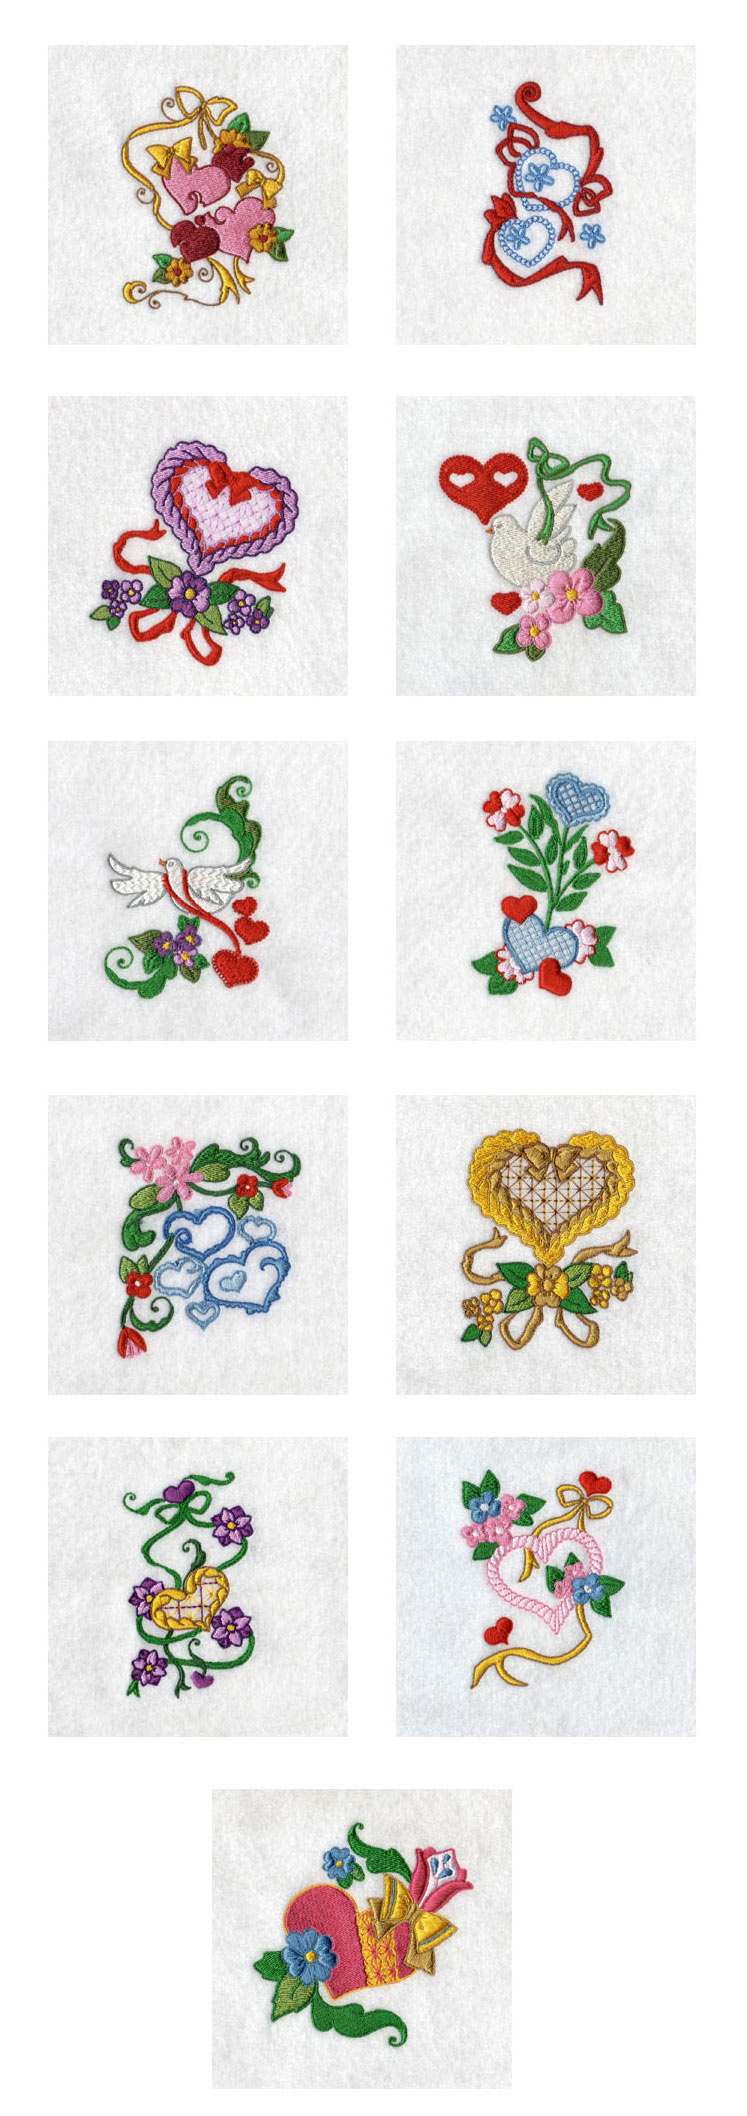 Hearts and Ribbons Embroidery Machine Design Details